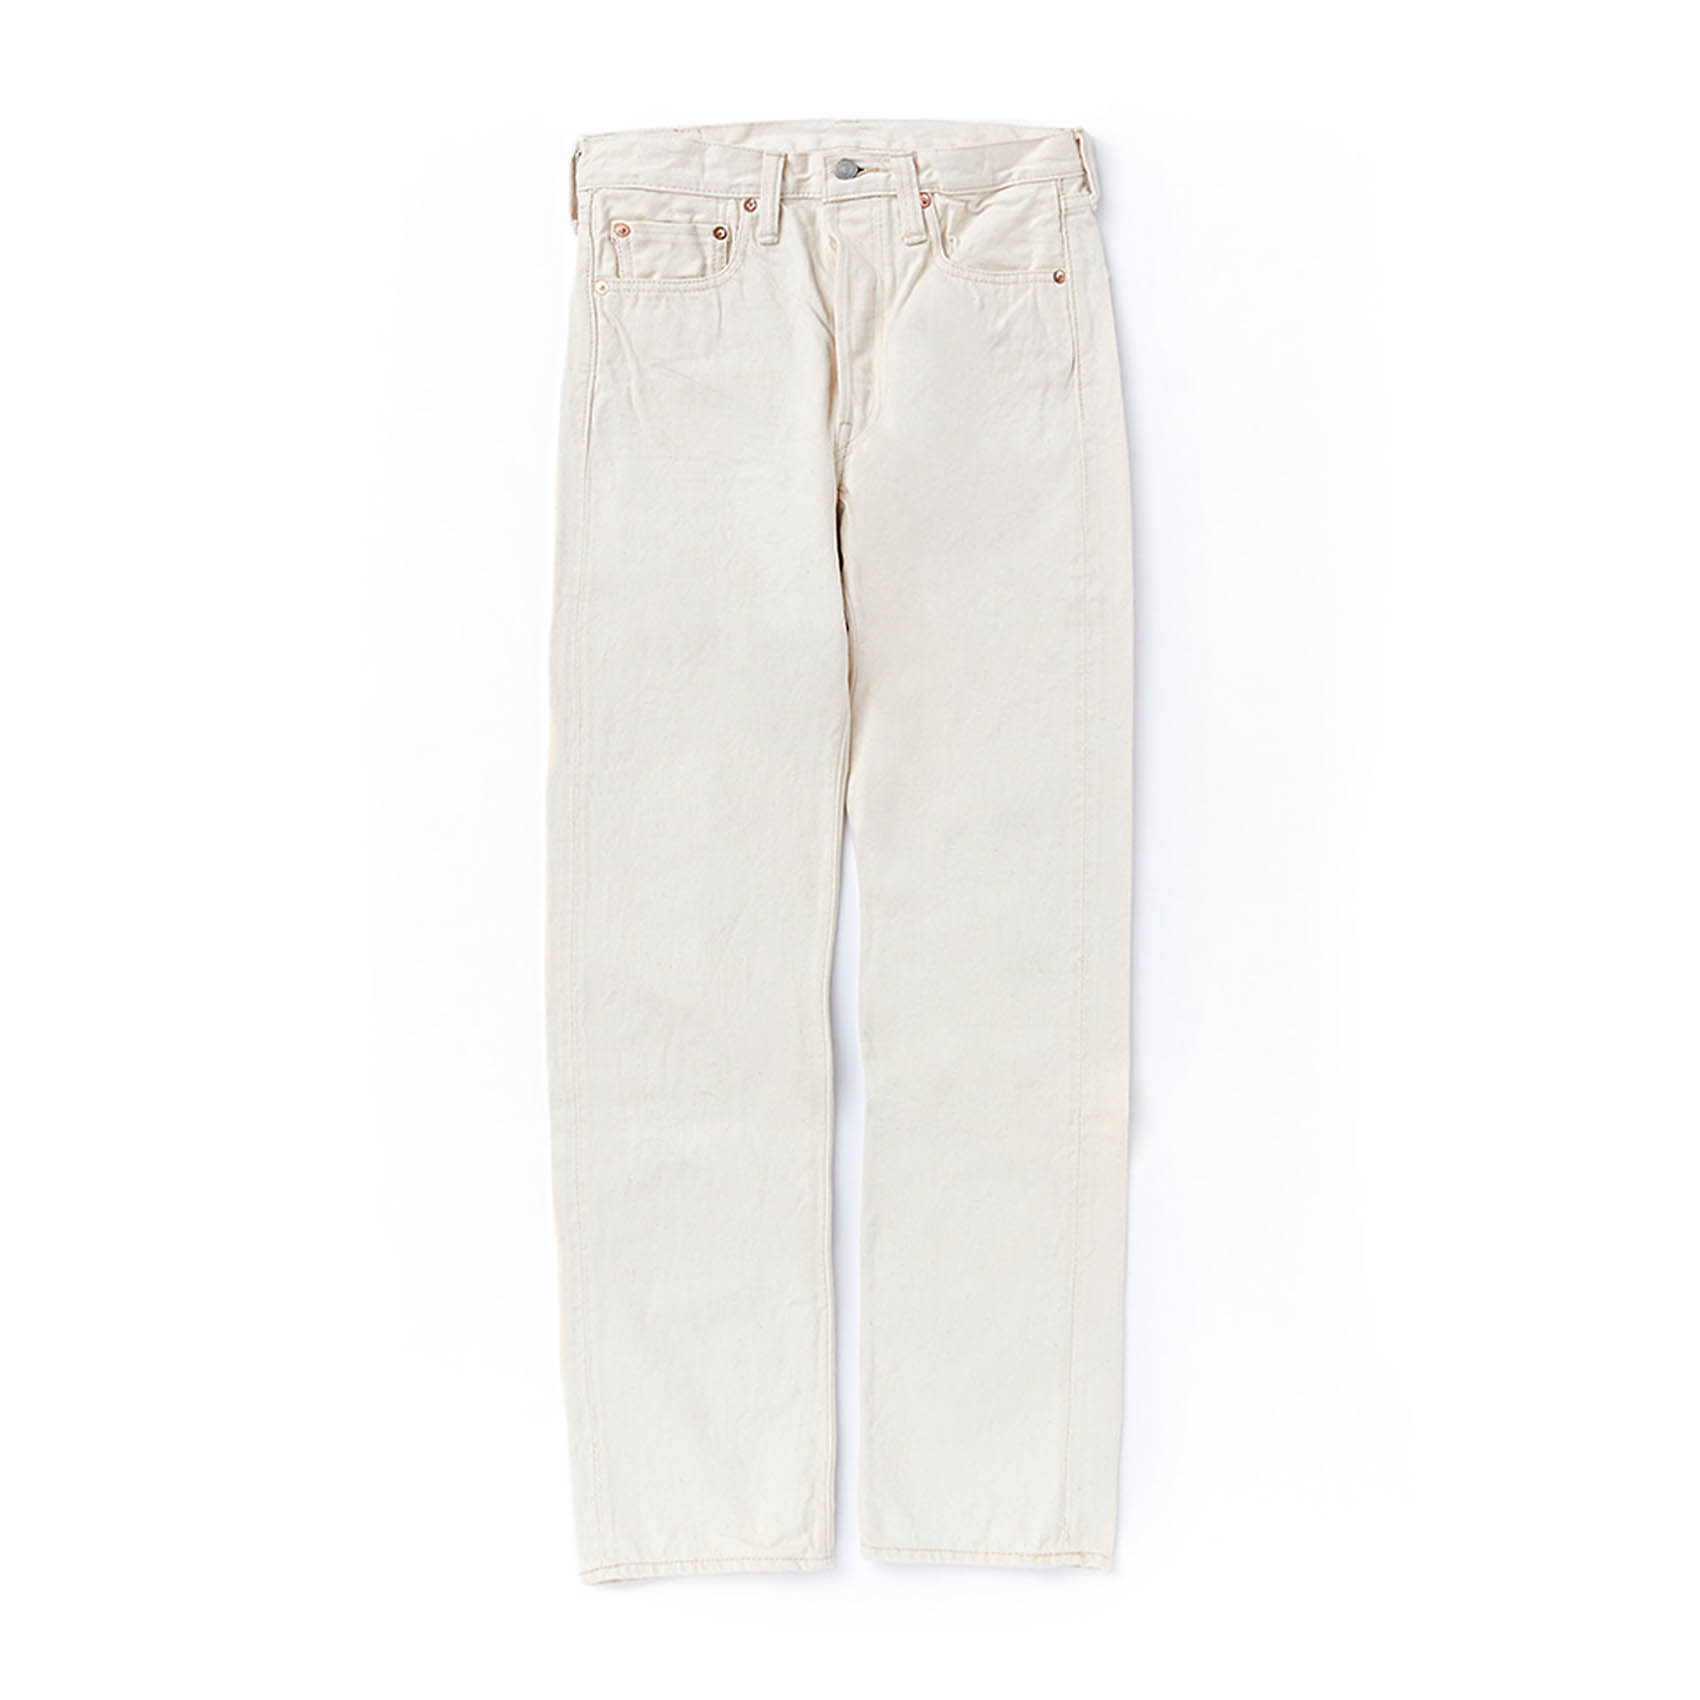 X COWORKERS EXCLUSIVE 1108 SLIM STRAIGHT - ECRU SELVEDGE